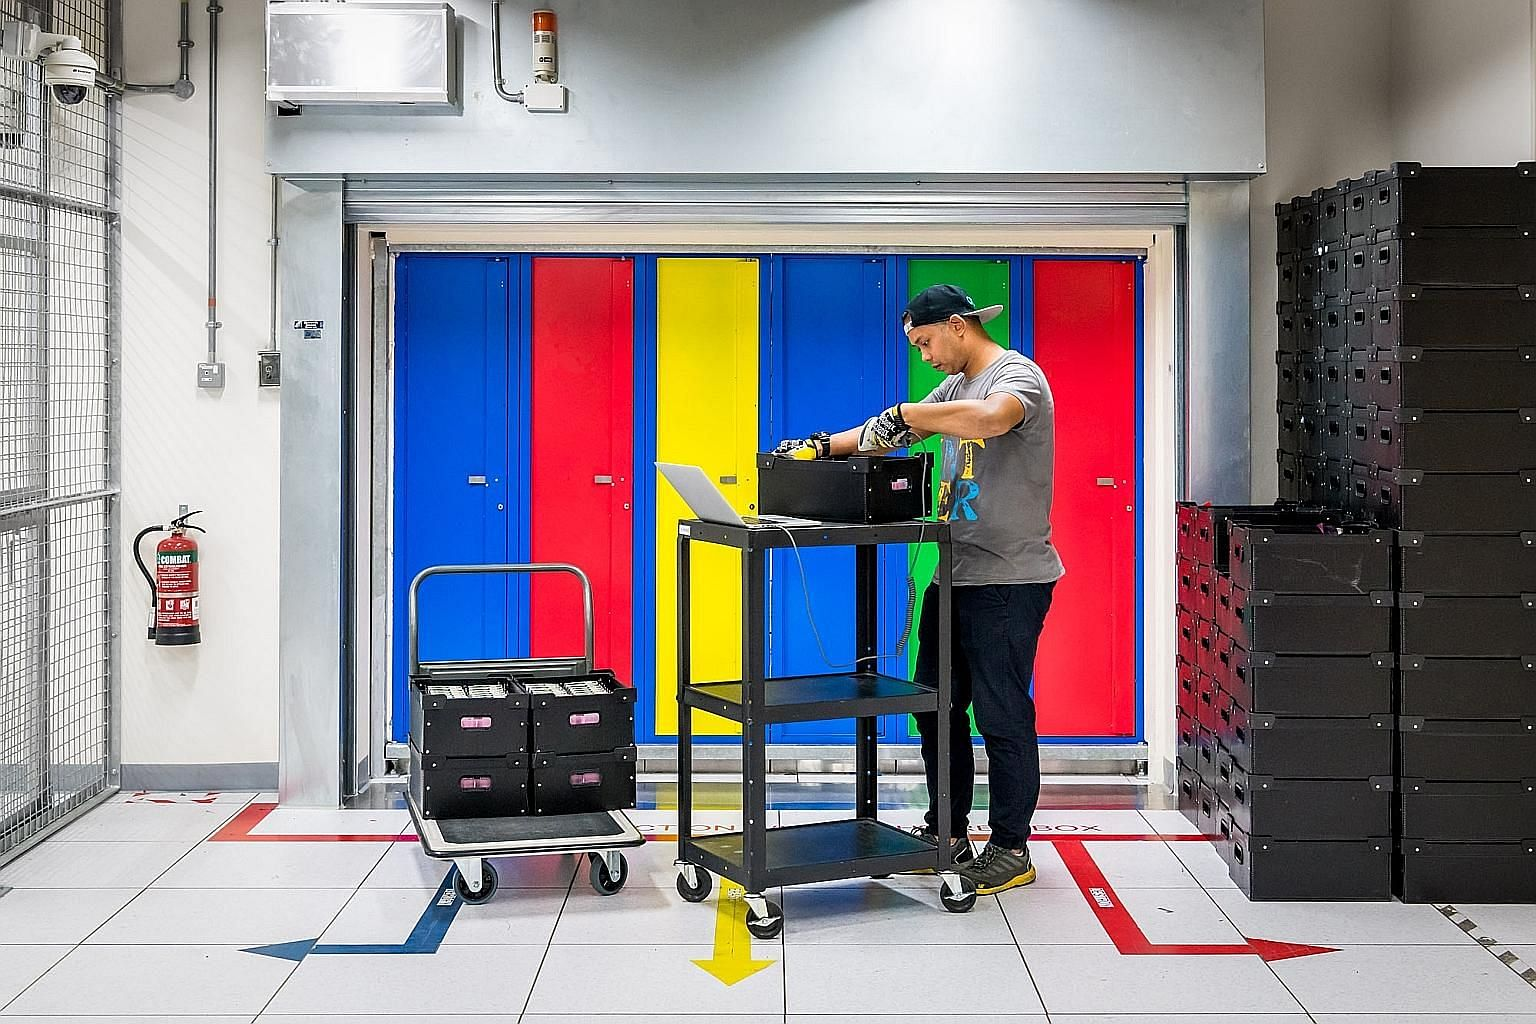 OCBC Bank's data centre logs and stores information and records of every transaction passing through the bank, from account openings to ATM withdrawals, and Internet and mobile banking transactions. A technician working at one of Google's data centre